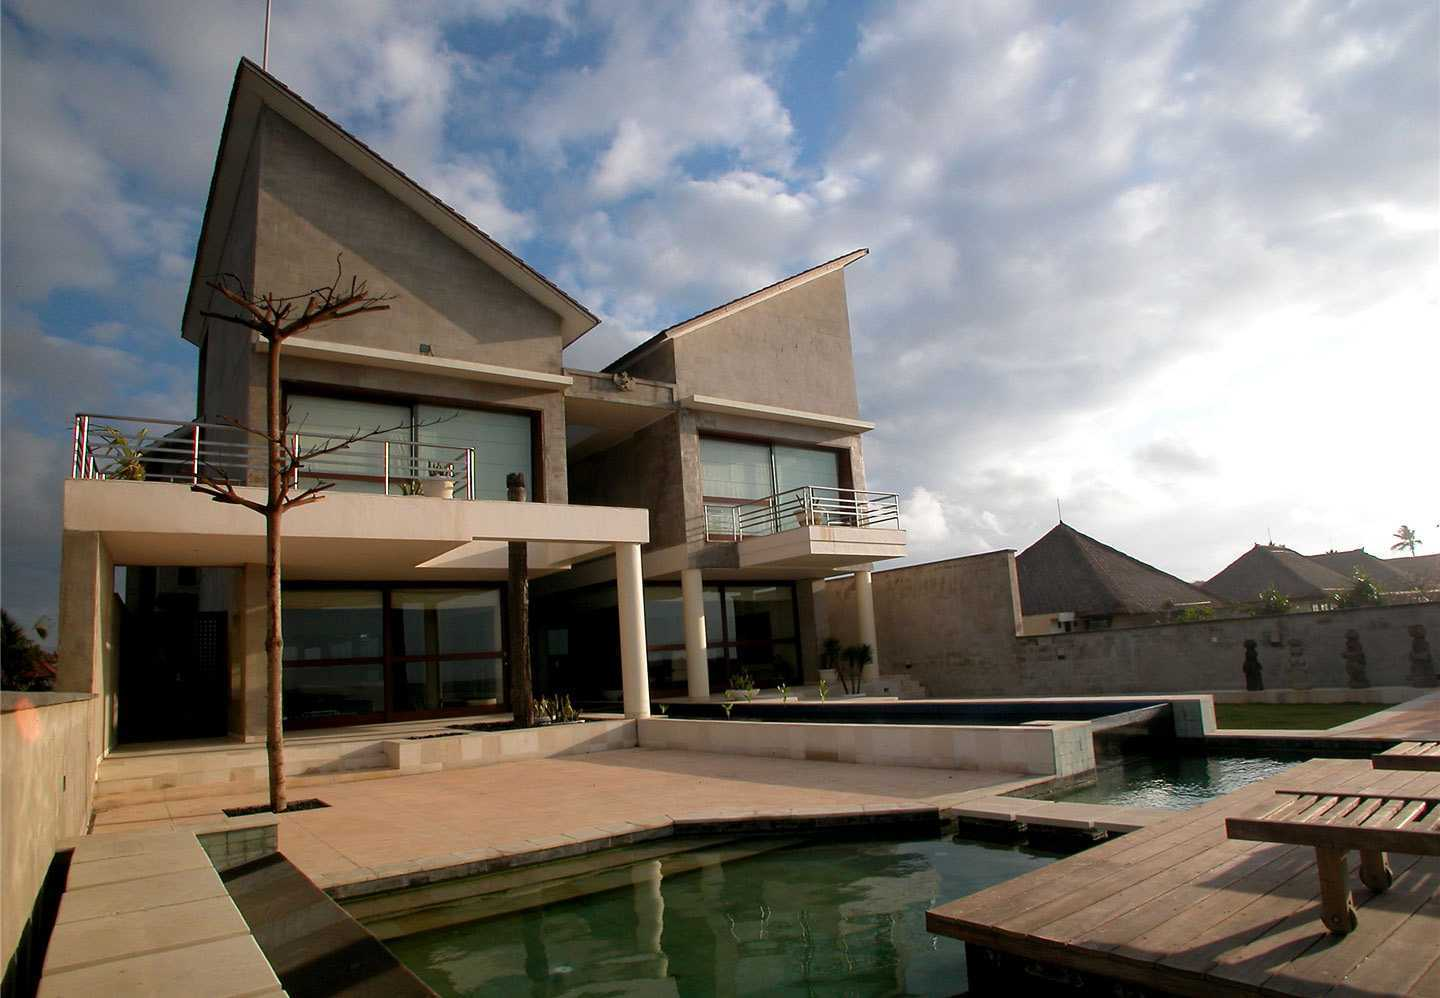 Agung Budi Raharsa | Architecture & Engineering Shark House - Bali Bali, Indonesia Ketewel, Bali Front View  12439